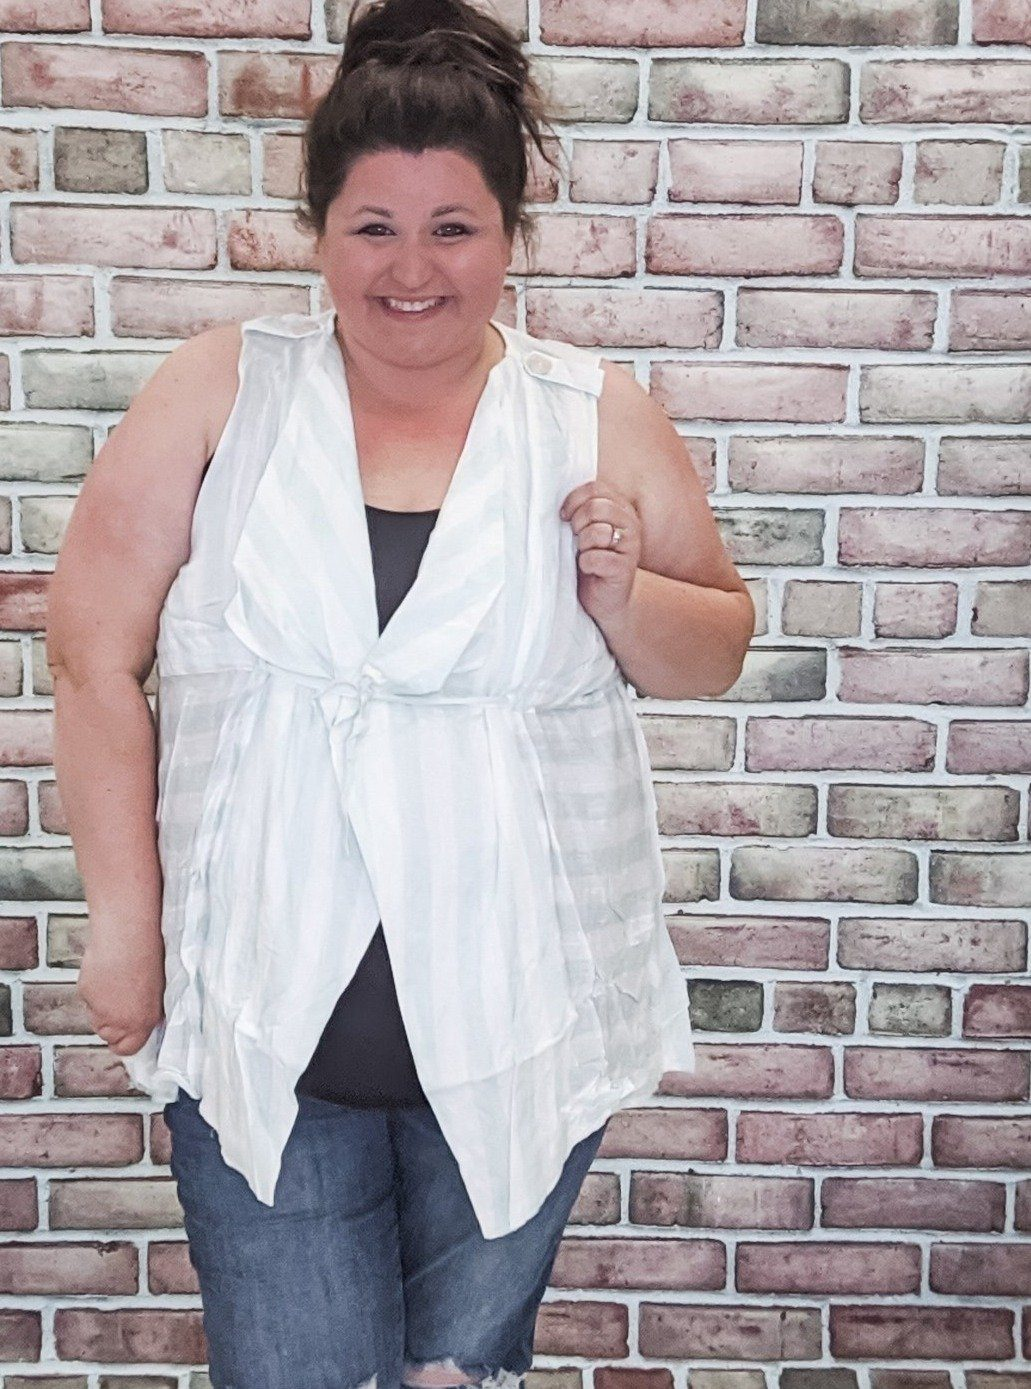 Striped Sleeveless Vest w/Tie (More Colors) Tops Stacked - Fashion for Curves